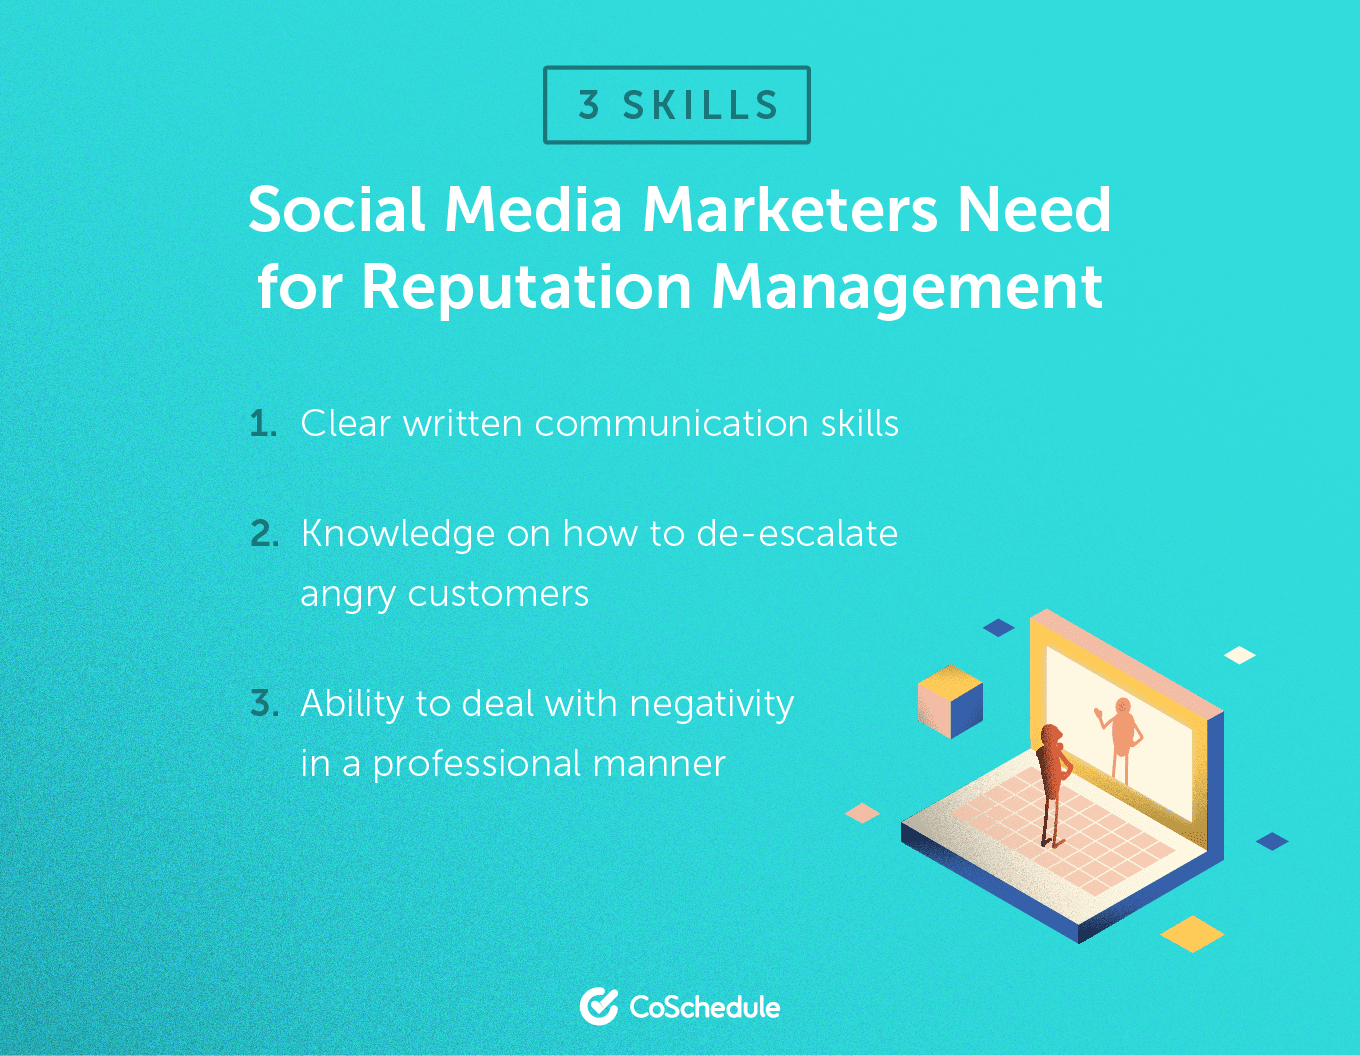 3 skills social media marketers need for reputation management (list)